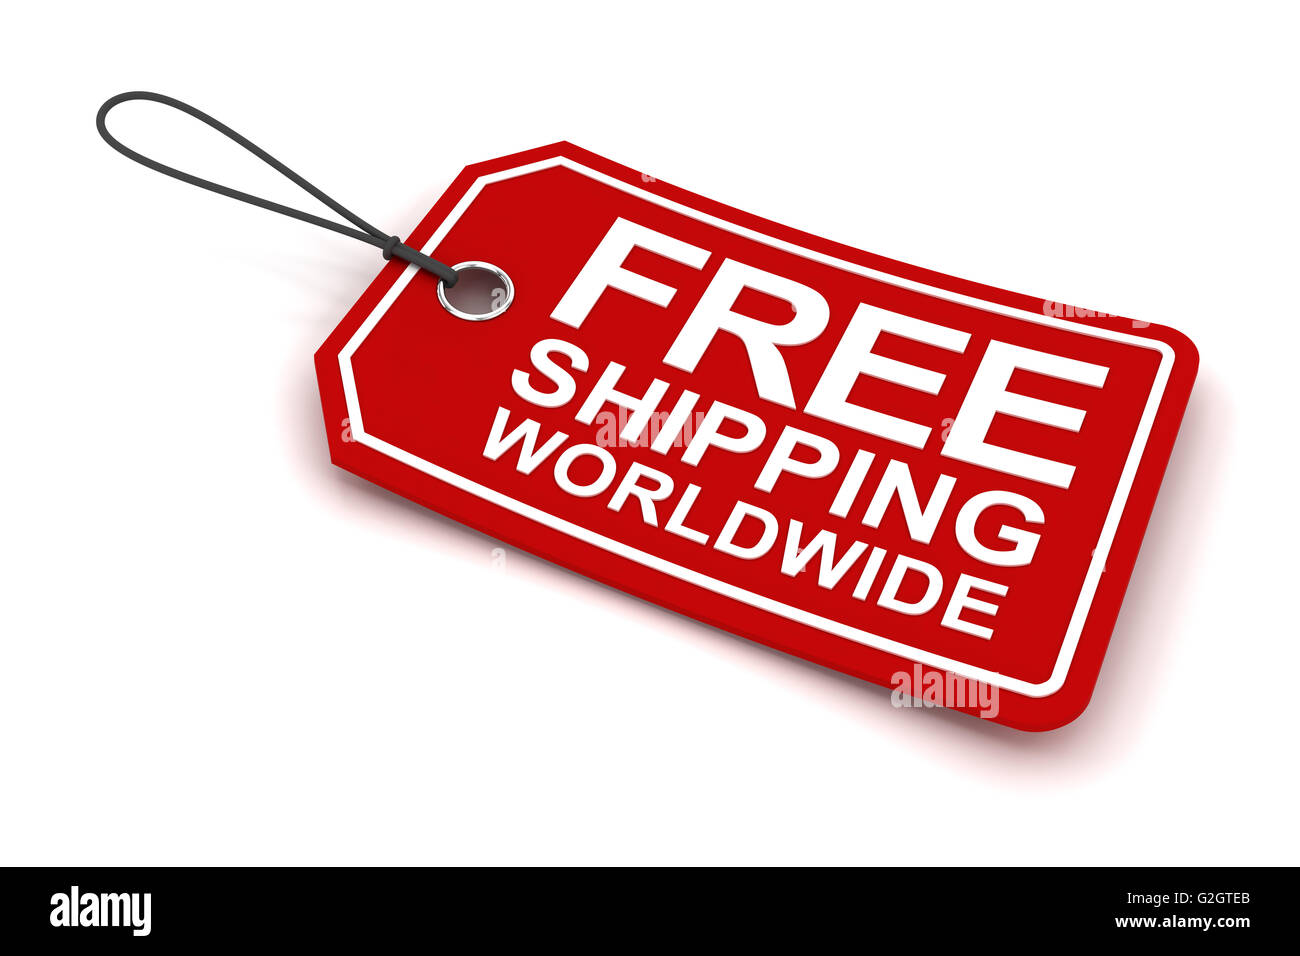 ba931465 Free shipping worldwide tag, 3d render Stock Photo: 104861971 - Alamy